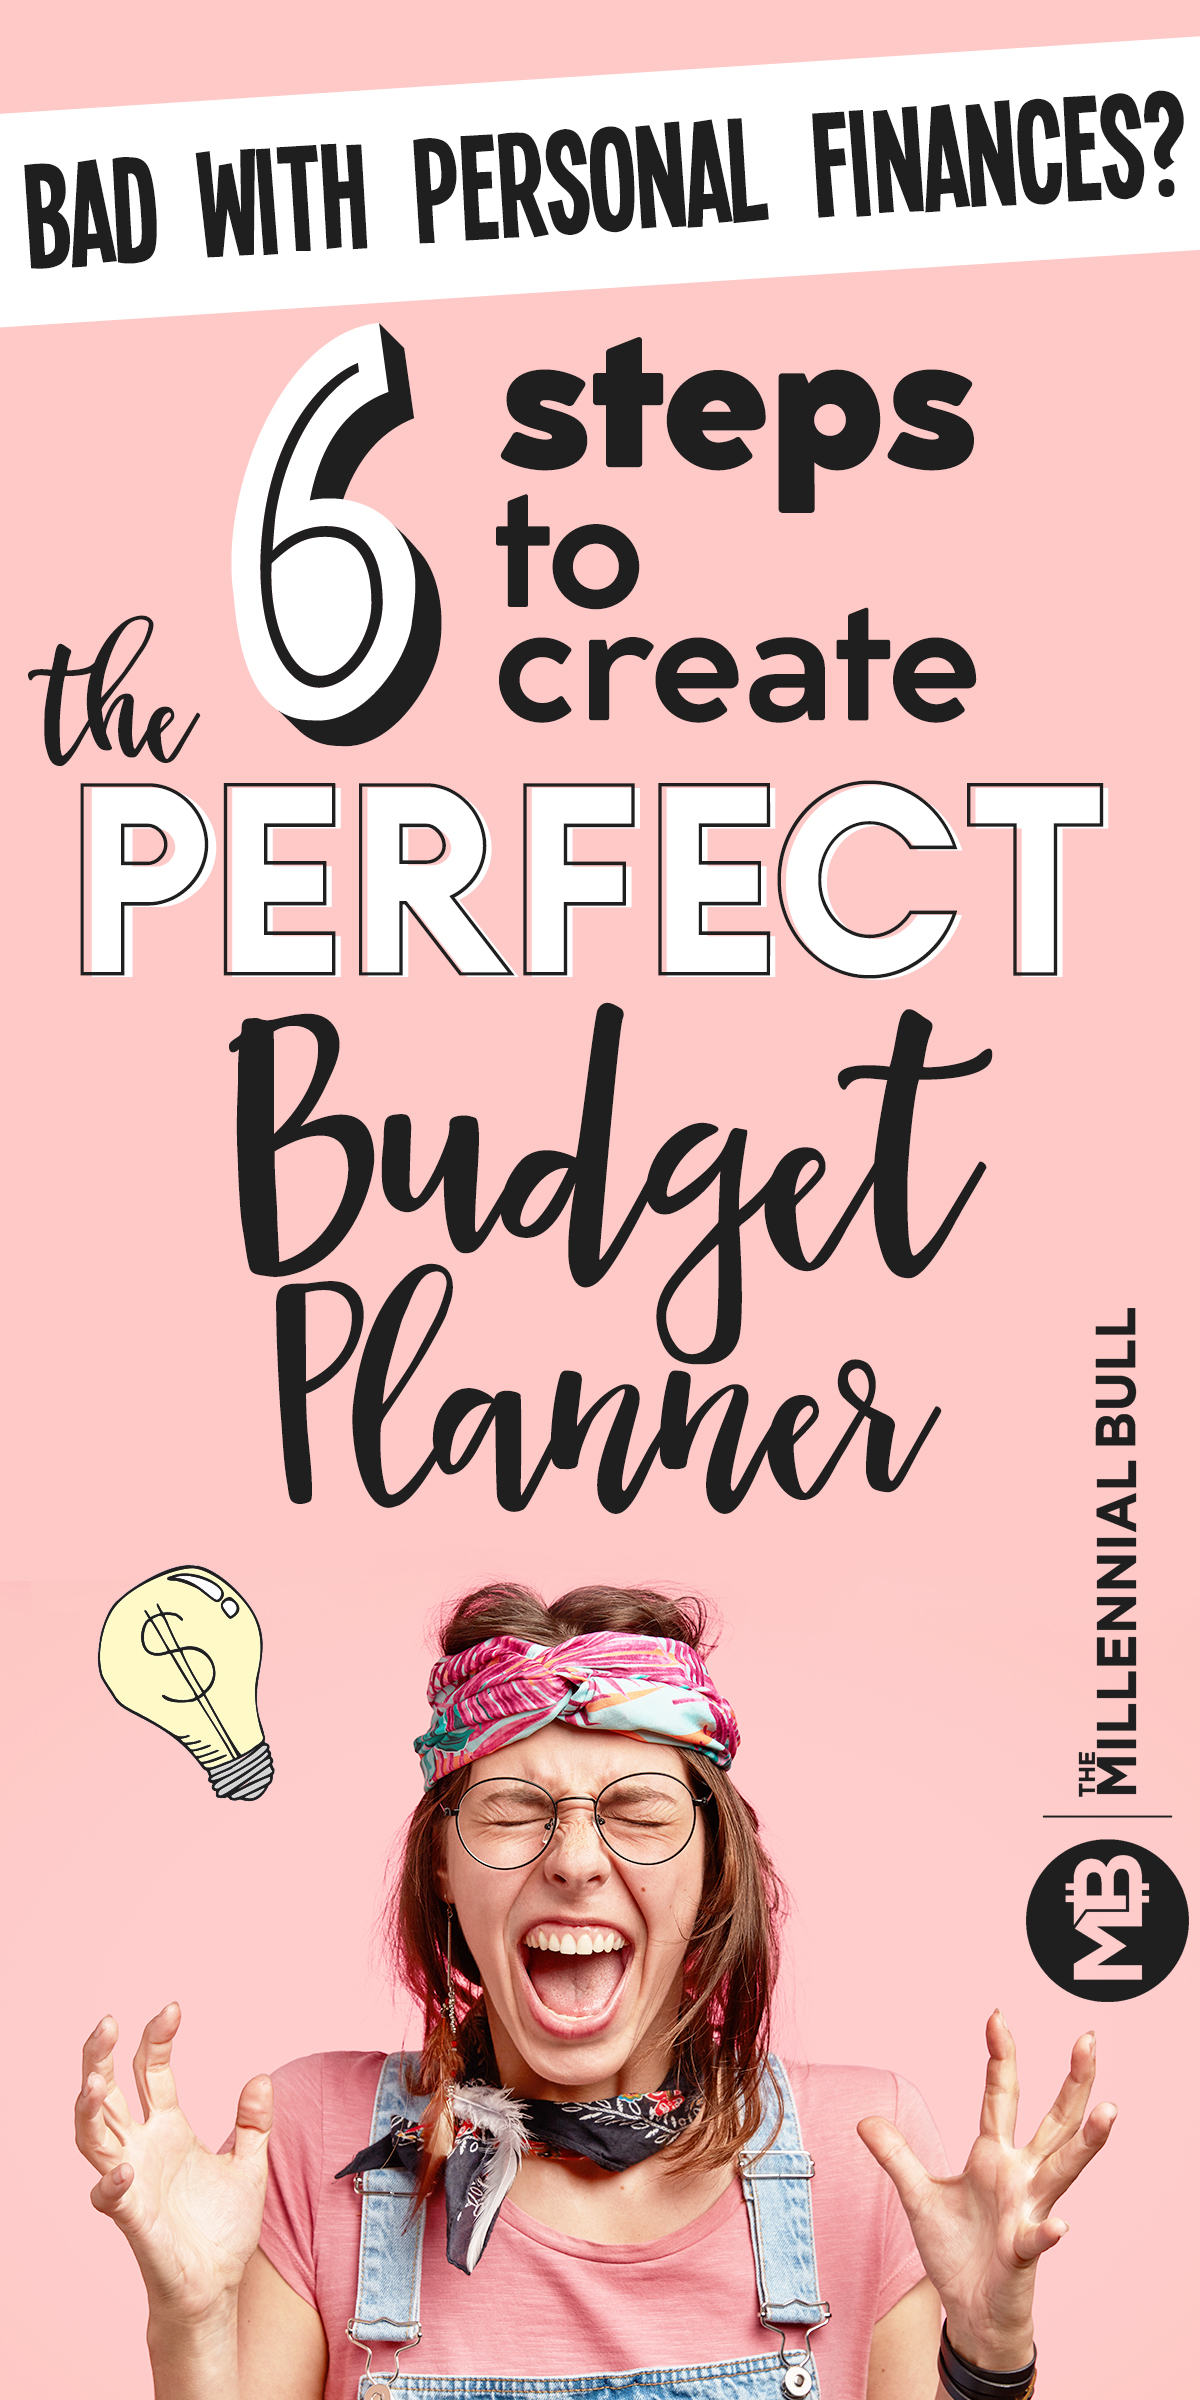 Bad with personal finances? Here are six steps to create the perfect budget planner. Think you need a certified financial planner? Think again! #personalfinance #budget #budgetplanner